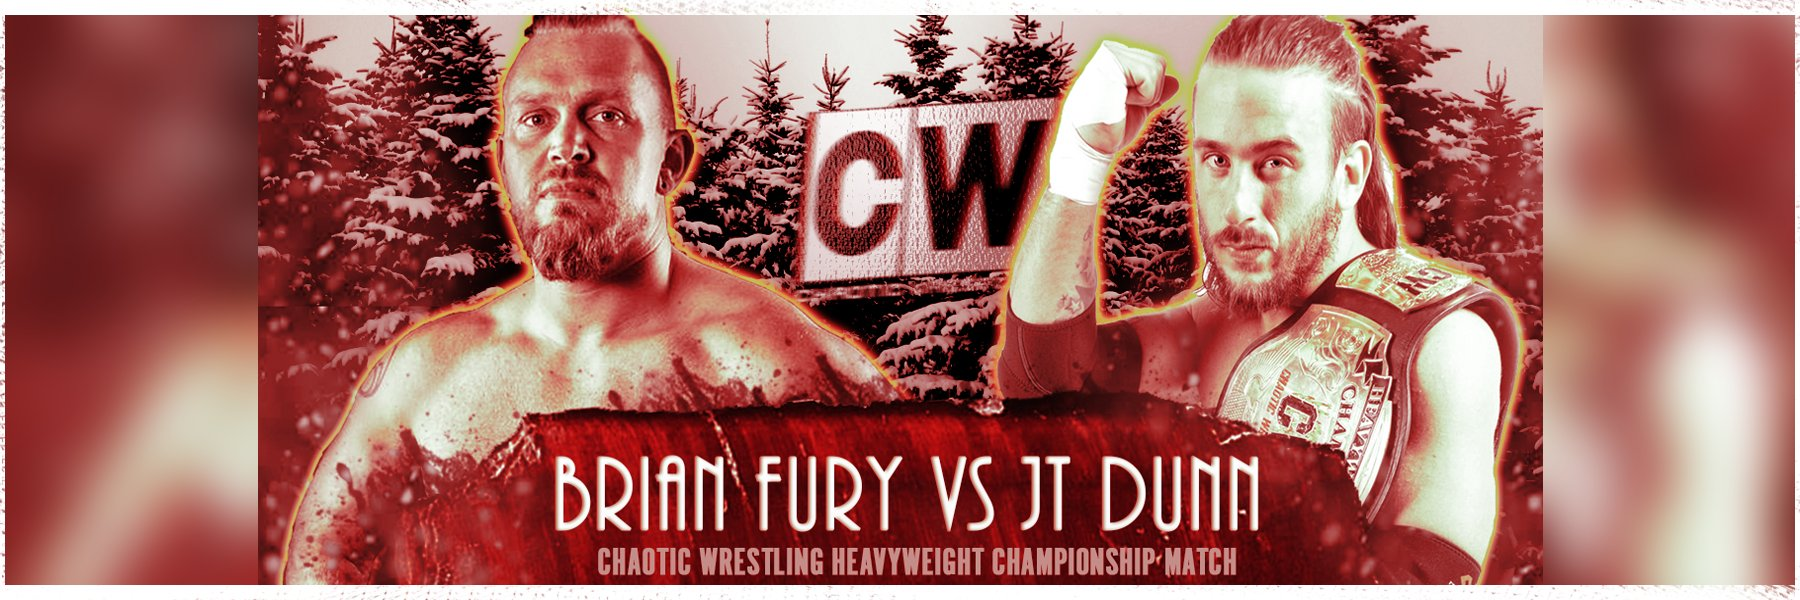 Chaotic Wrestling December 7th- Brian Fury Returns To The Ring